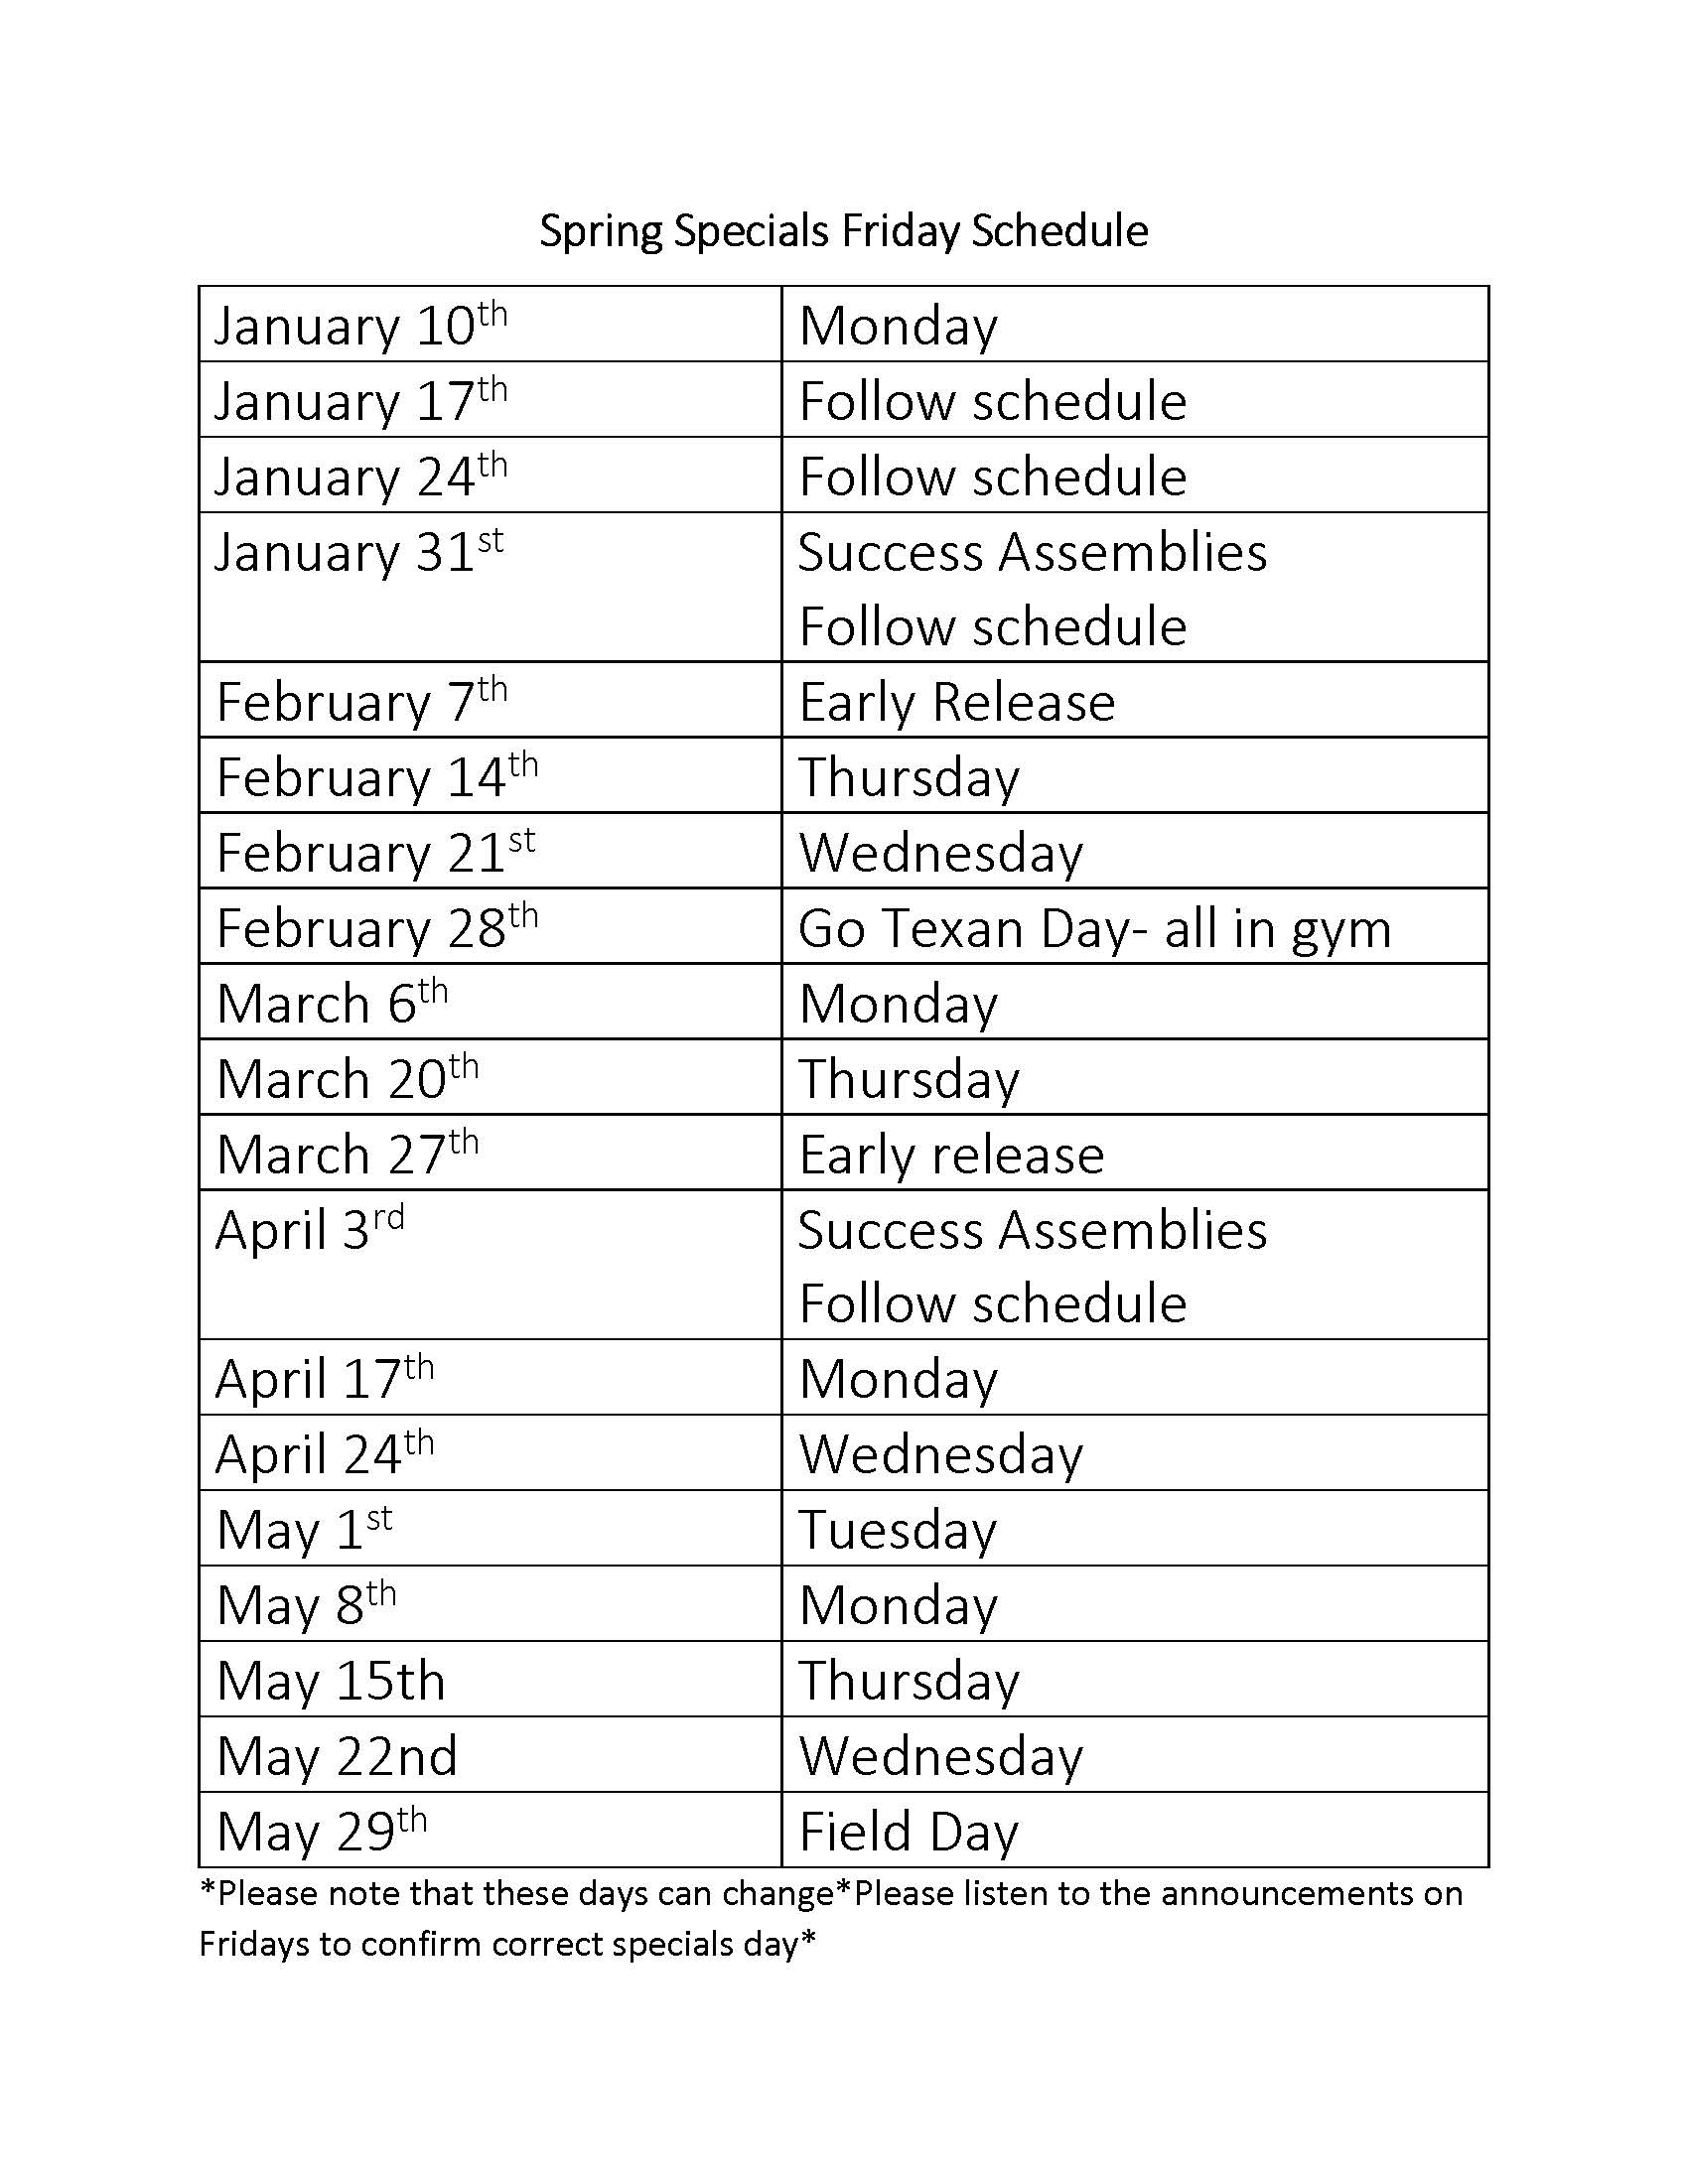 spring2020fridayschedule (002)_Page_1